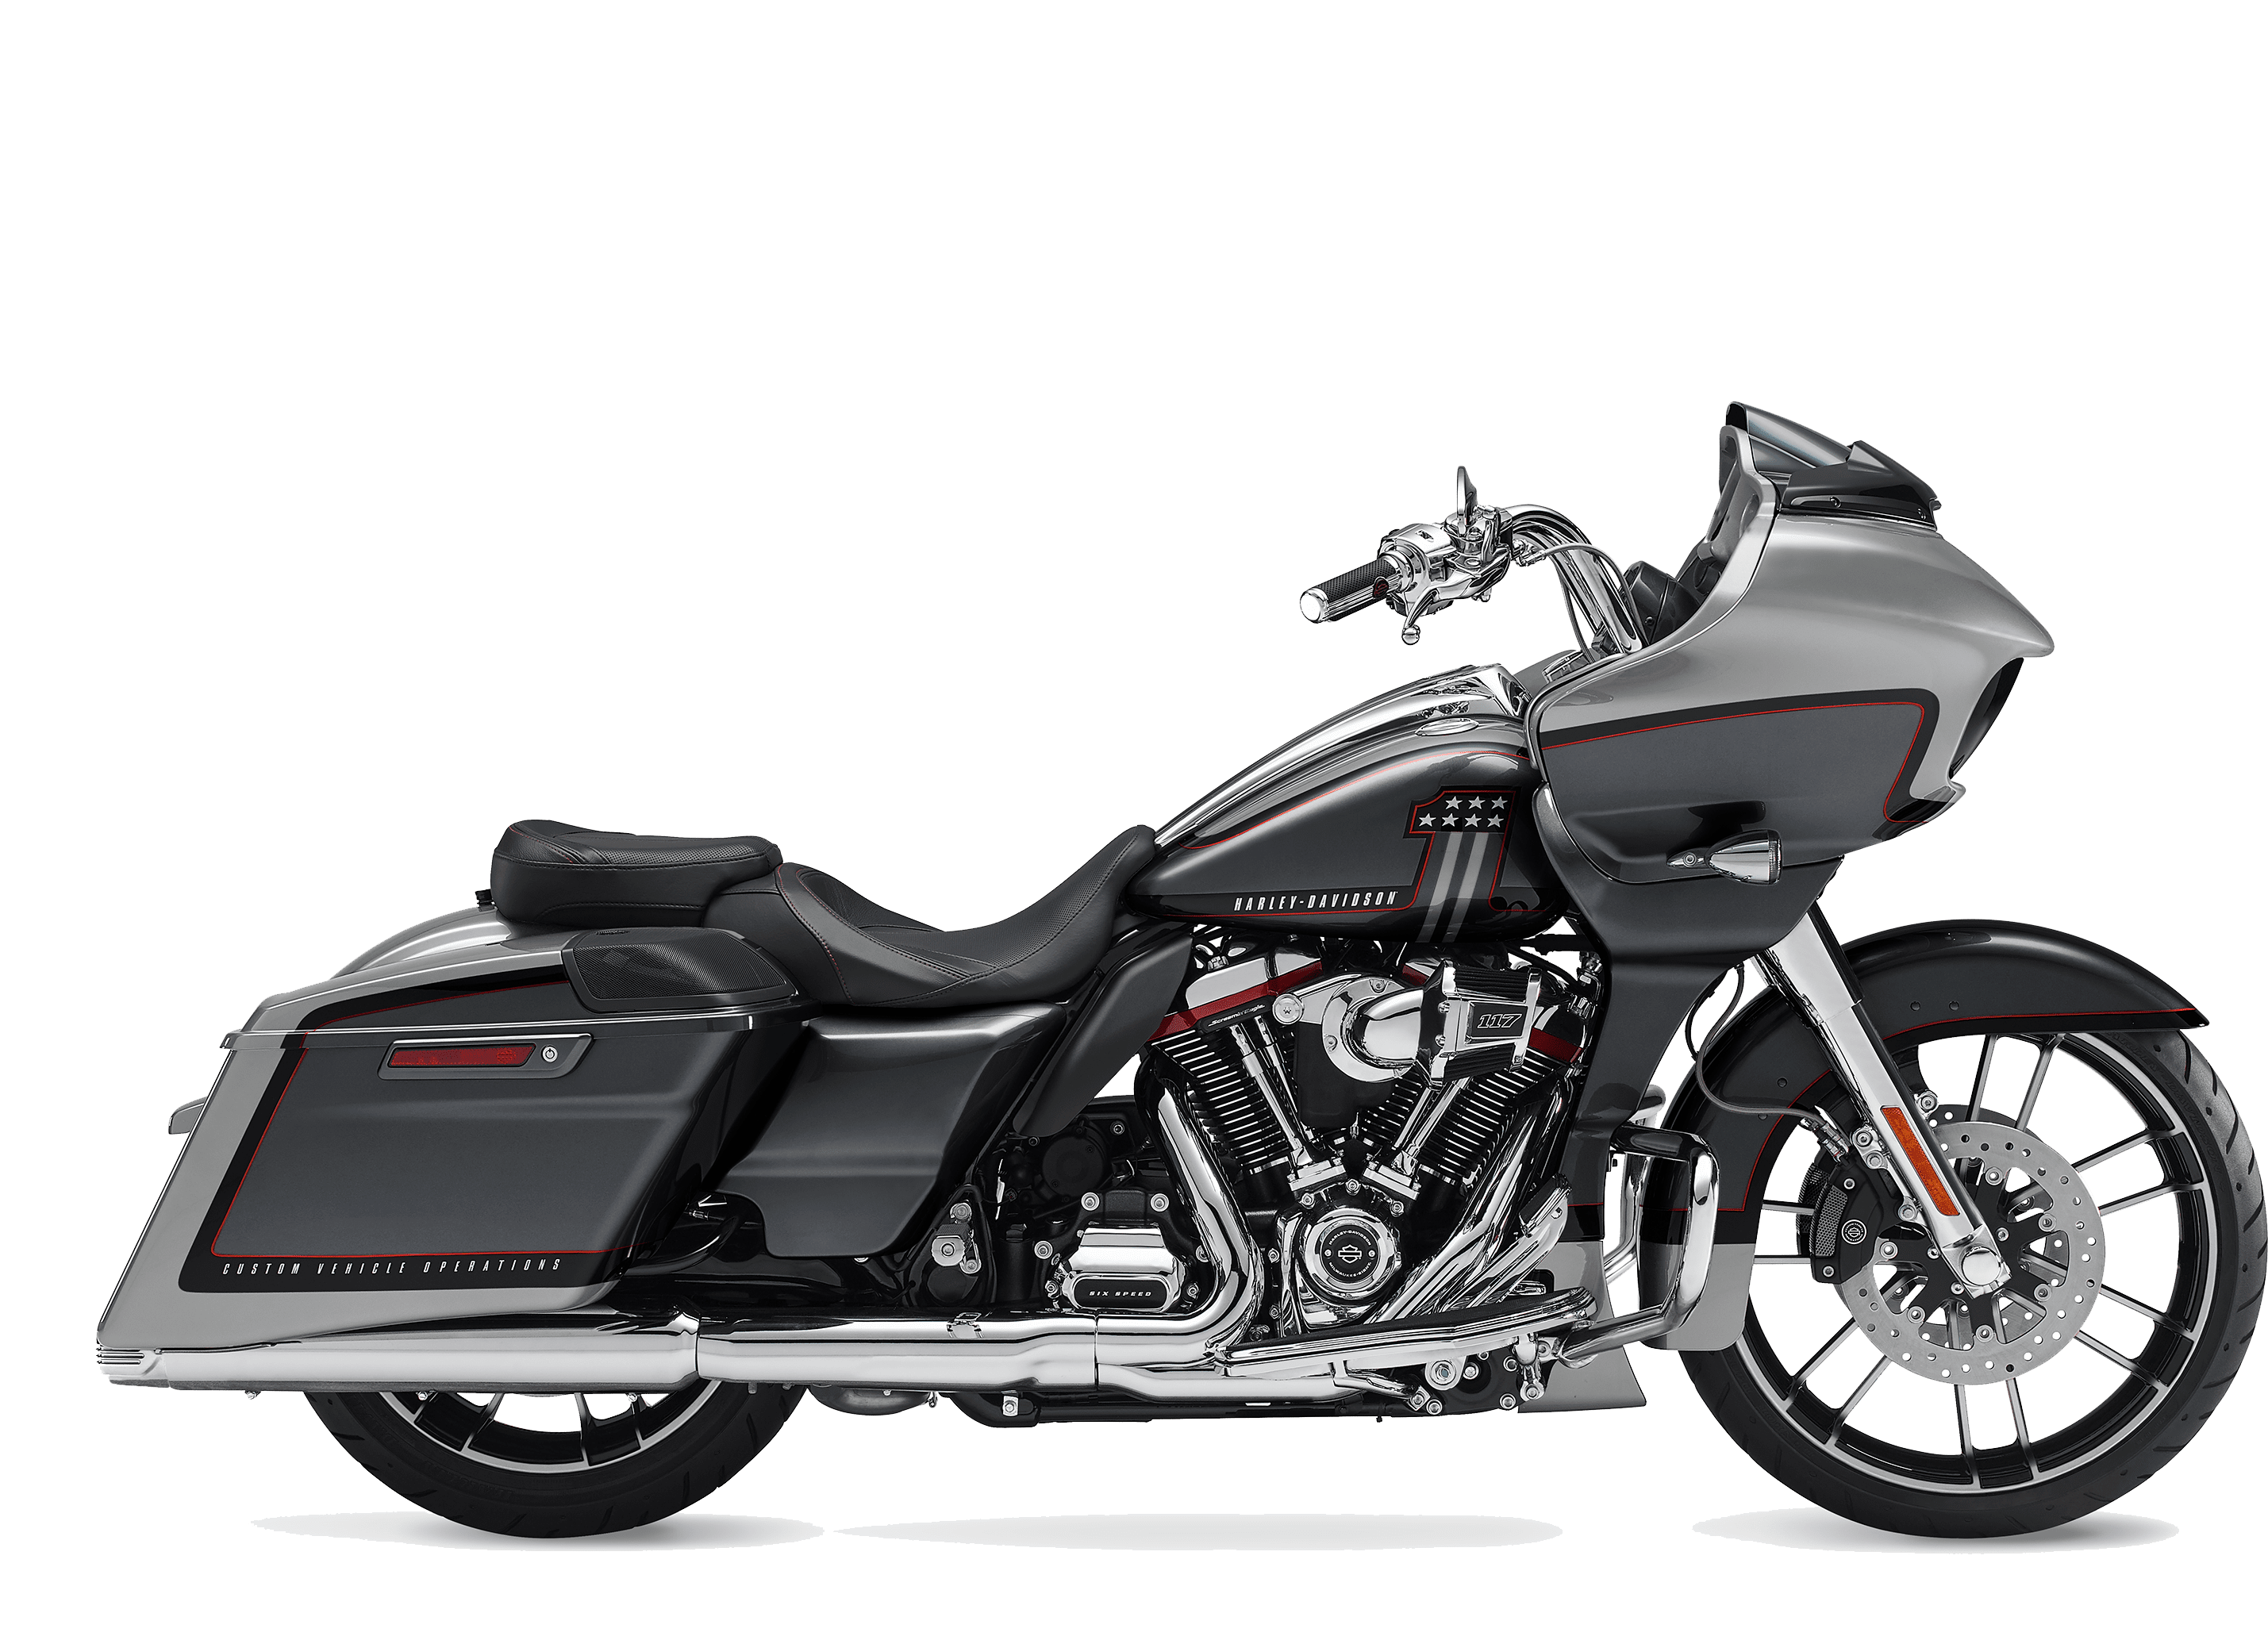 2019 Harley-Davidson H-D CVO™ Road Glide® Lighting Silver and Charred Steel with Black Hole